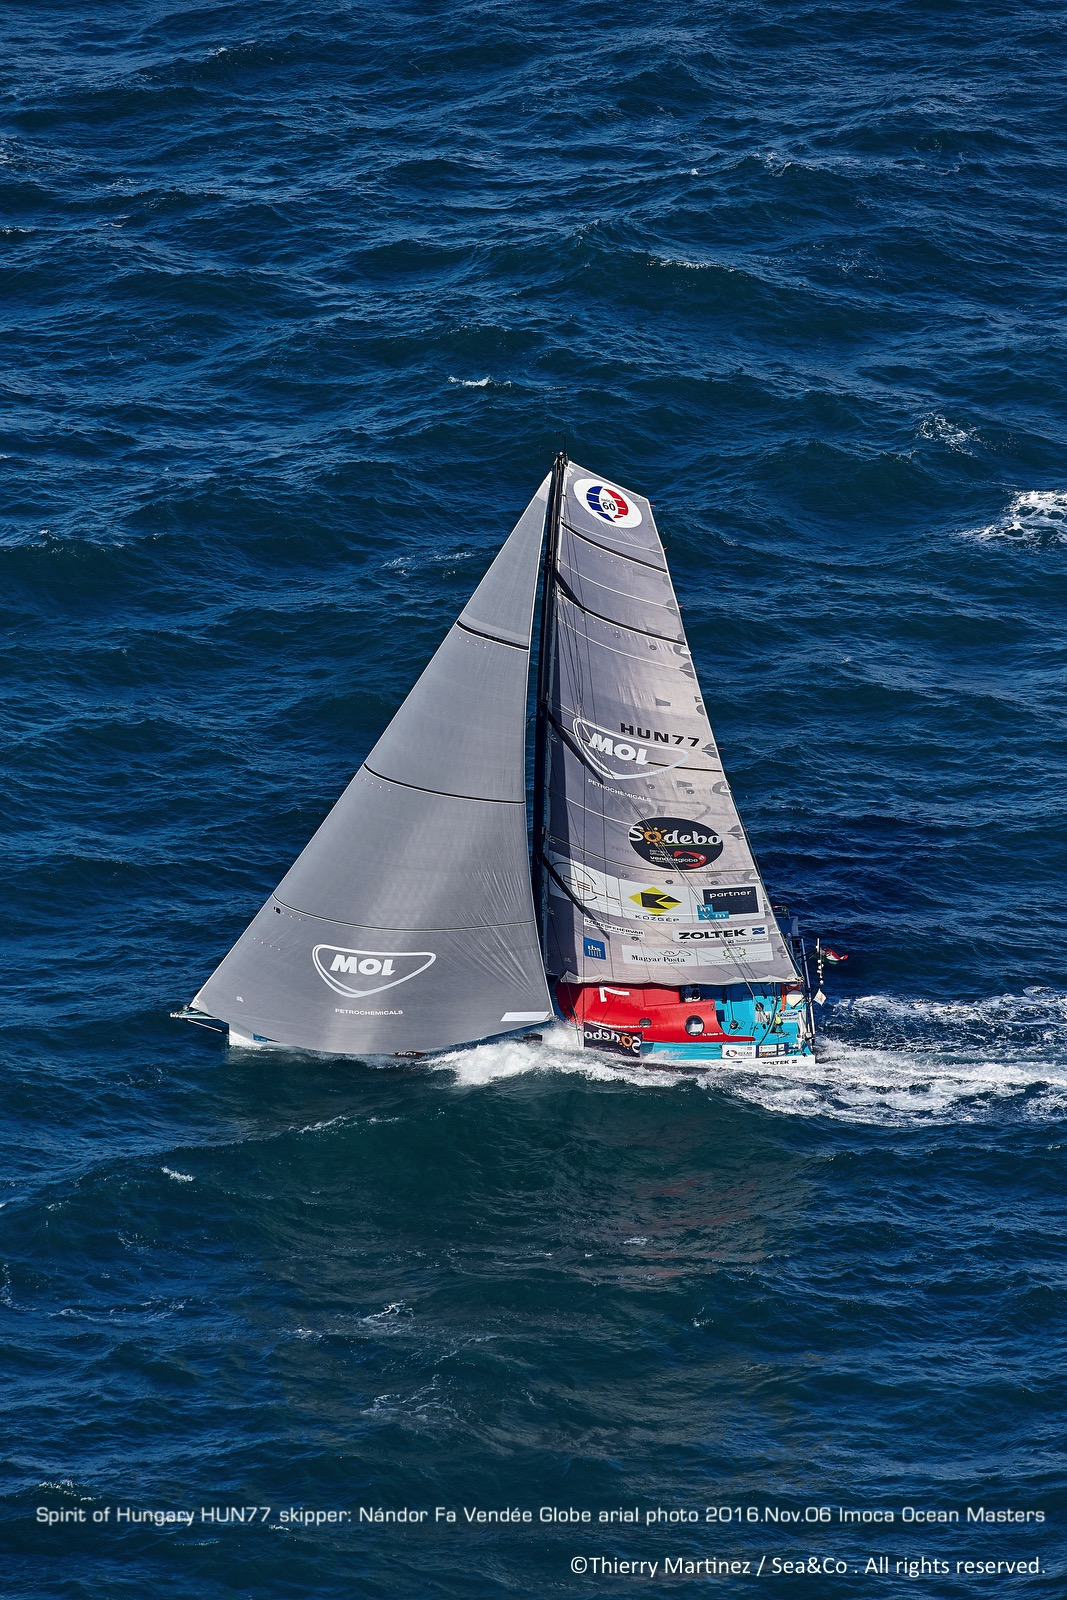 """16_80912 © Thierry Martinez / Sea&Co. LES SABLES D'OLONNE - FRANCE . 6 November 2016. Start of 8th Vendée Globe ( solo sailing race round the world non-stop without assistance). 29 Skippers on starting line. Nandor FA, skipper of """"SPIRIT OF HUNGUARY"""""""